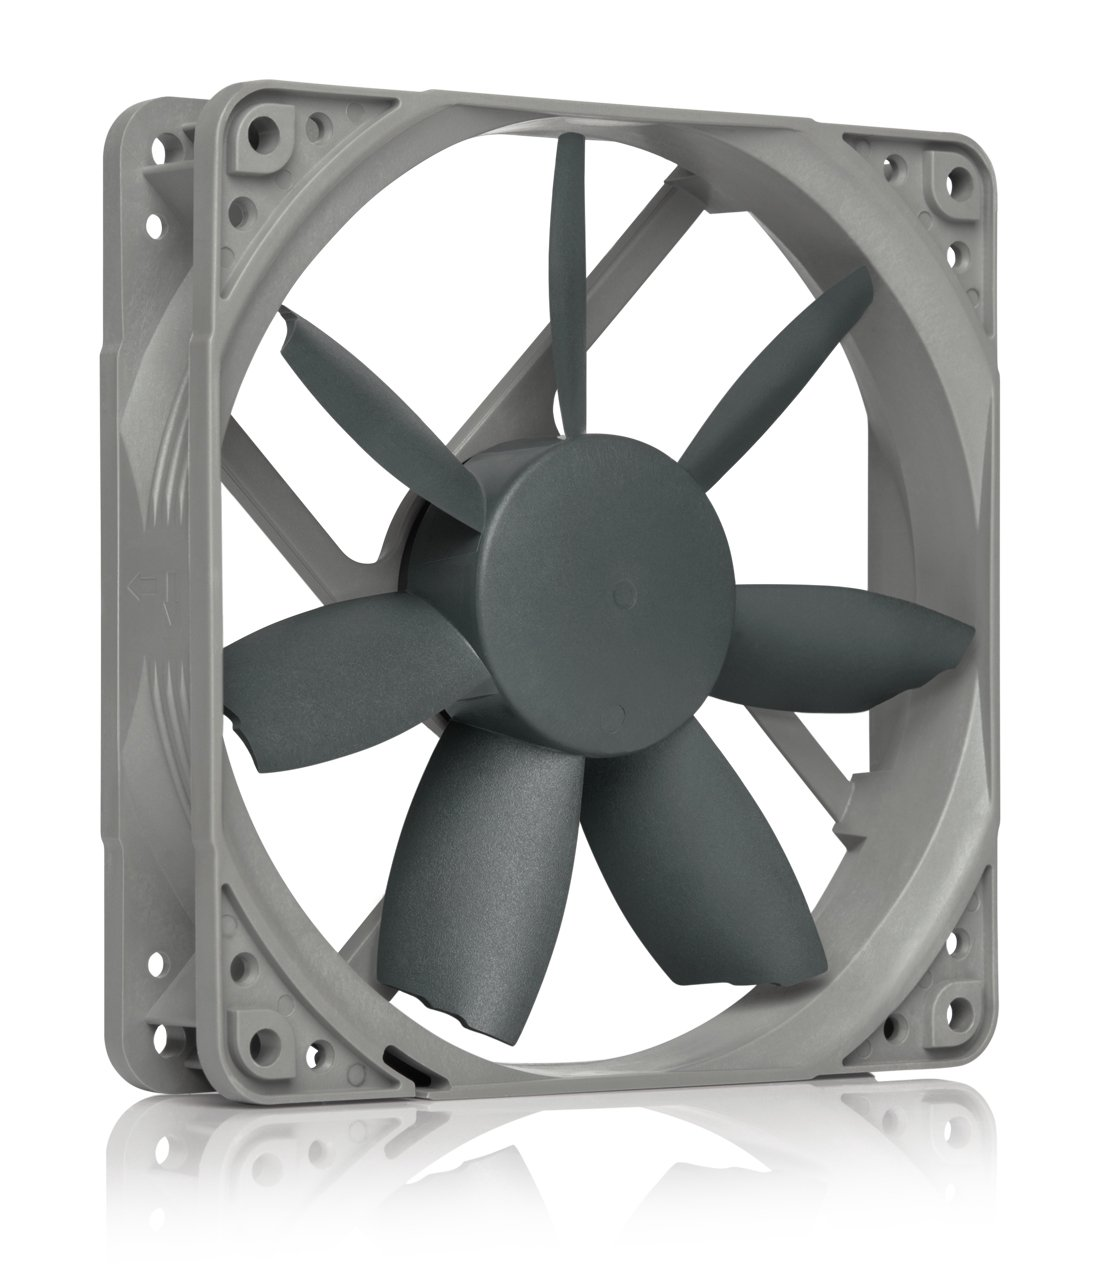 Fan Cooler Noctua Nf-s12b Redux-1200 Pwm, High Performance F